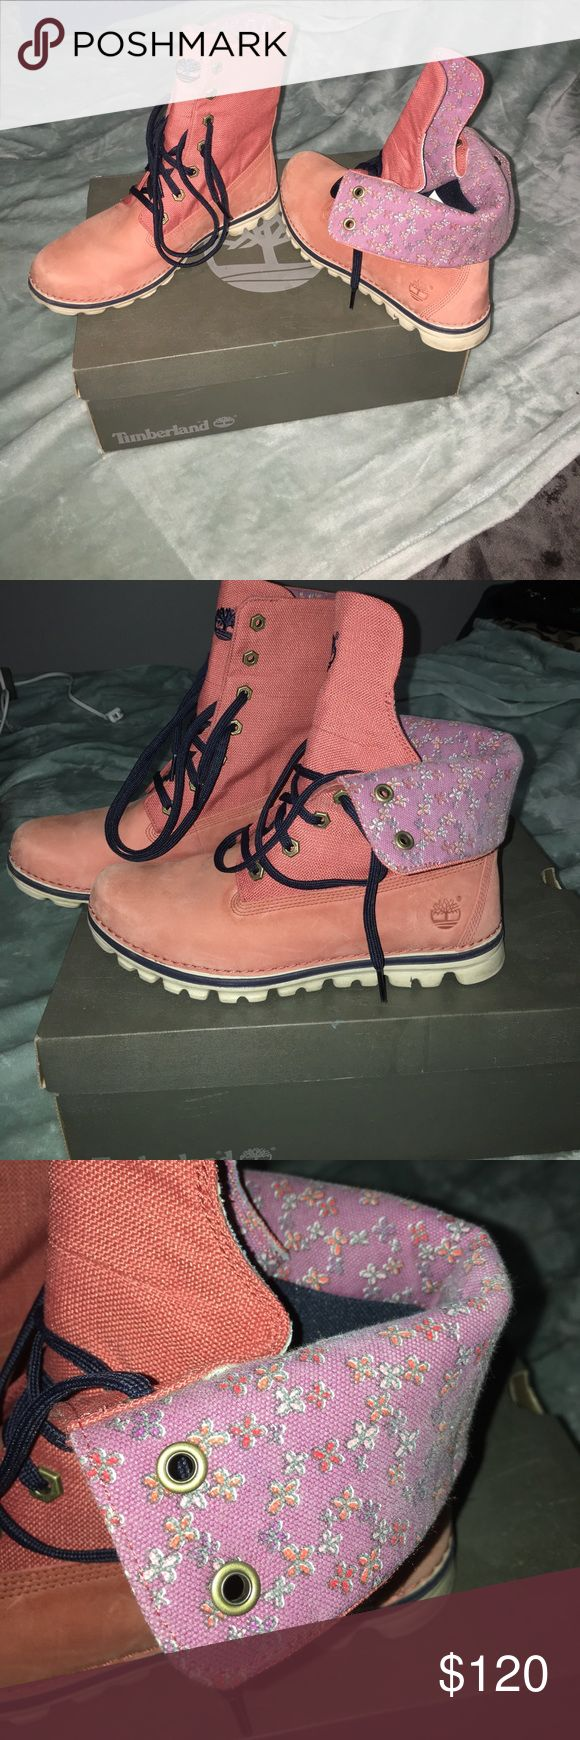 Timberland Earthkeeper boots You can wear them two different ways, with the tops up or fold them down with purple floral print showing! I'd say it's a coral-ish color sort of pinkish Timberland Shoes Lace Up Boots